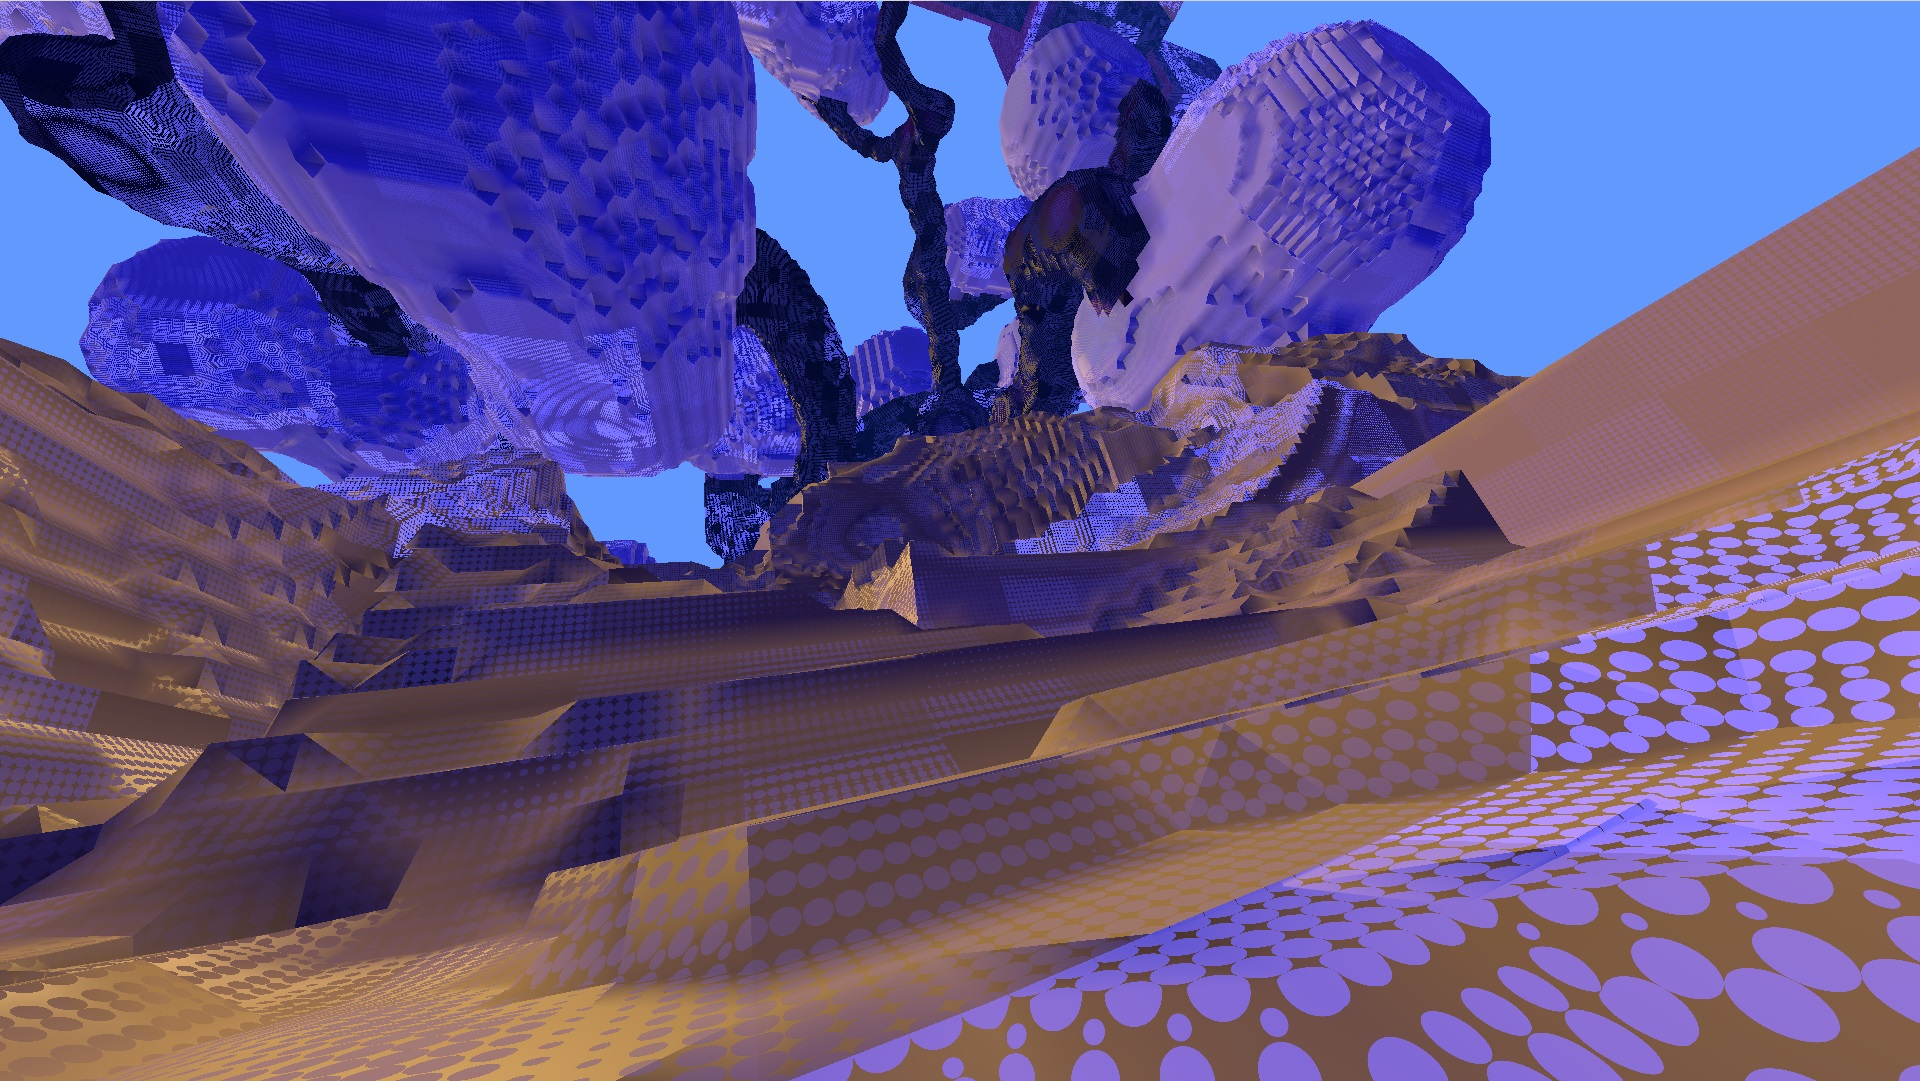 Avoyd voxel game prototype screenshot - Glowing patterns and tree